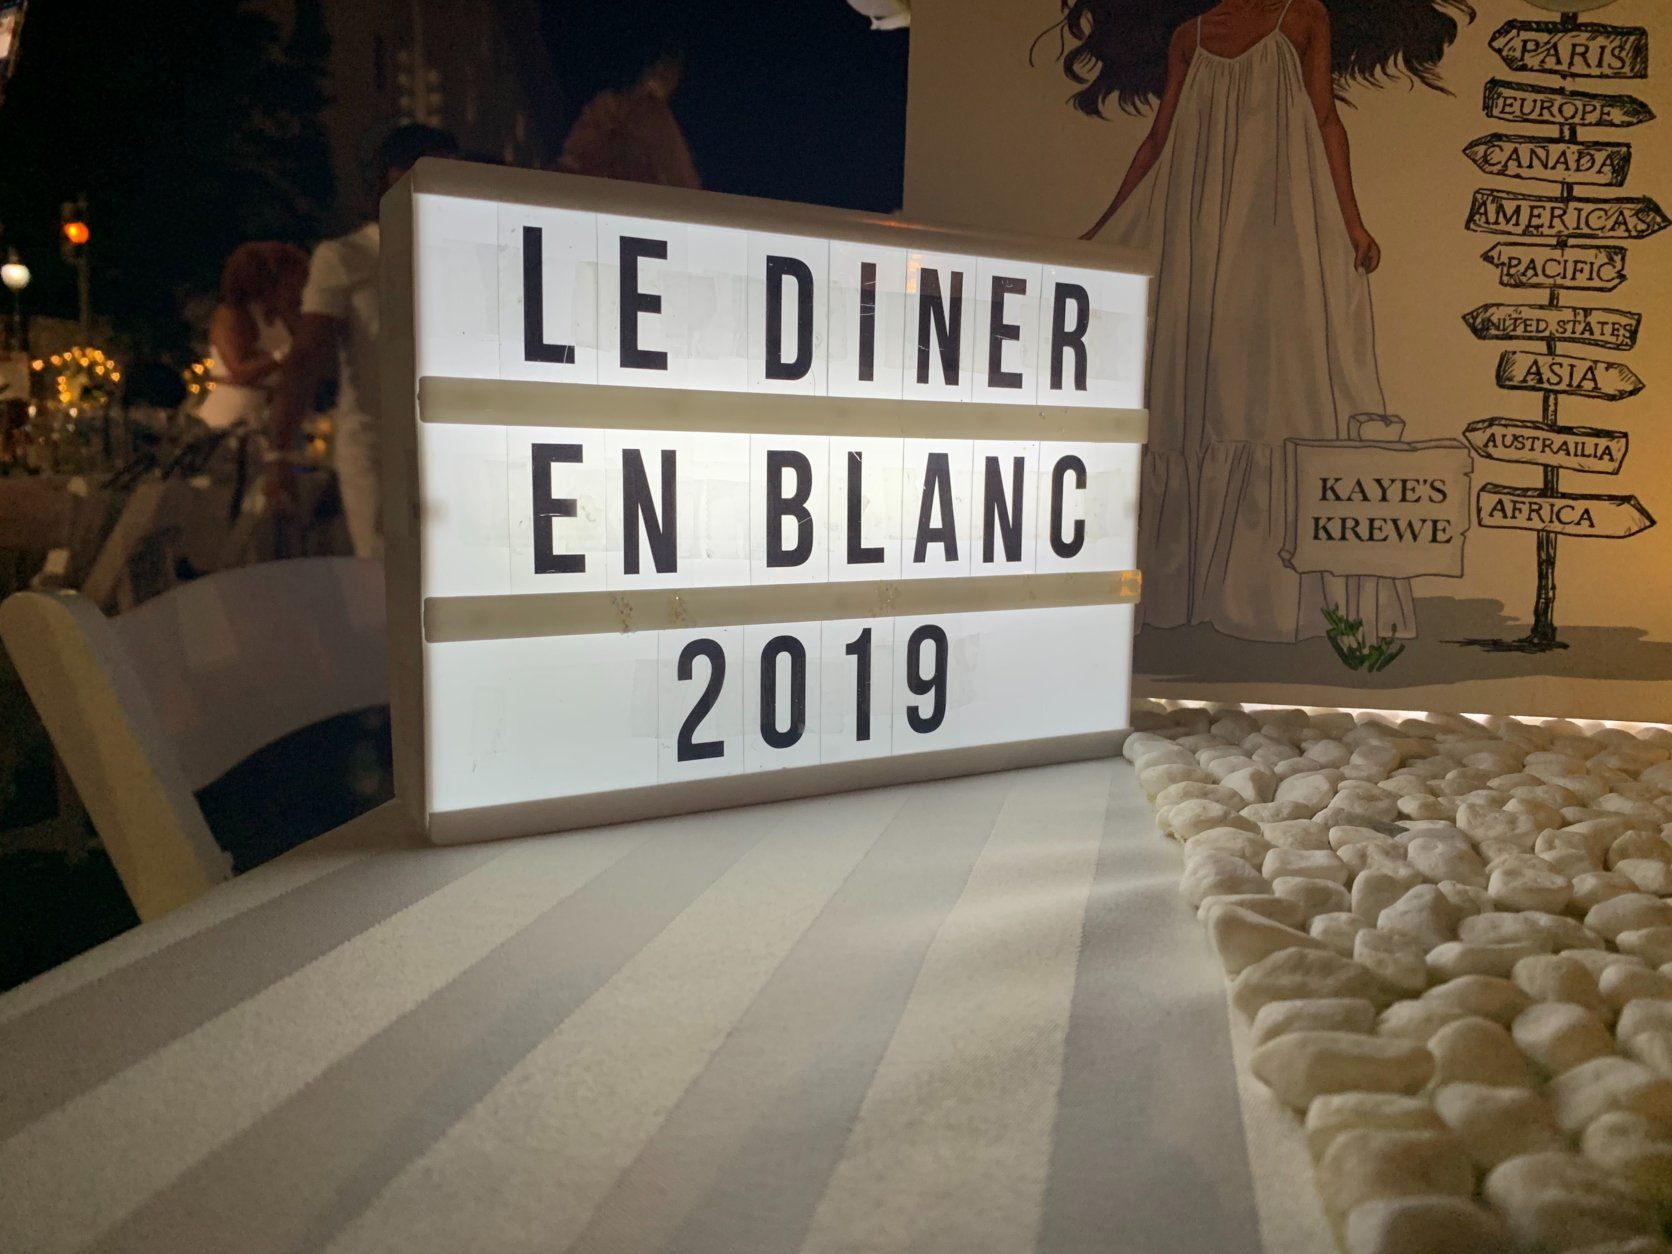 <p>Buffy Holmes came from Hanover, Maryland, near Baltimore, to attend her first Diner en Blanc. She got an invite from a friend in July, and the planning began. First came some orders from Amazon and some trips to purchase decorations and place settings from TJ Maxx.</p> <p>&#8220;I&#8217;ve never been before, and I didn&#8217;t have those things in my arsenal, so it got pretty expensive,&#8221; she said. &#8220;I think I did pretty good, but there are some really elaborate ones, so I&#8217;m taking notes and I plan to come back bigger and better.&#8221;</p>